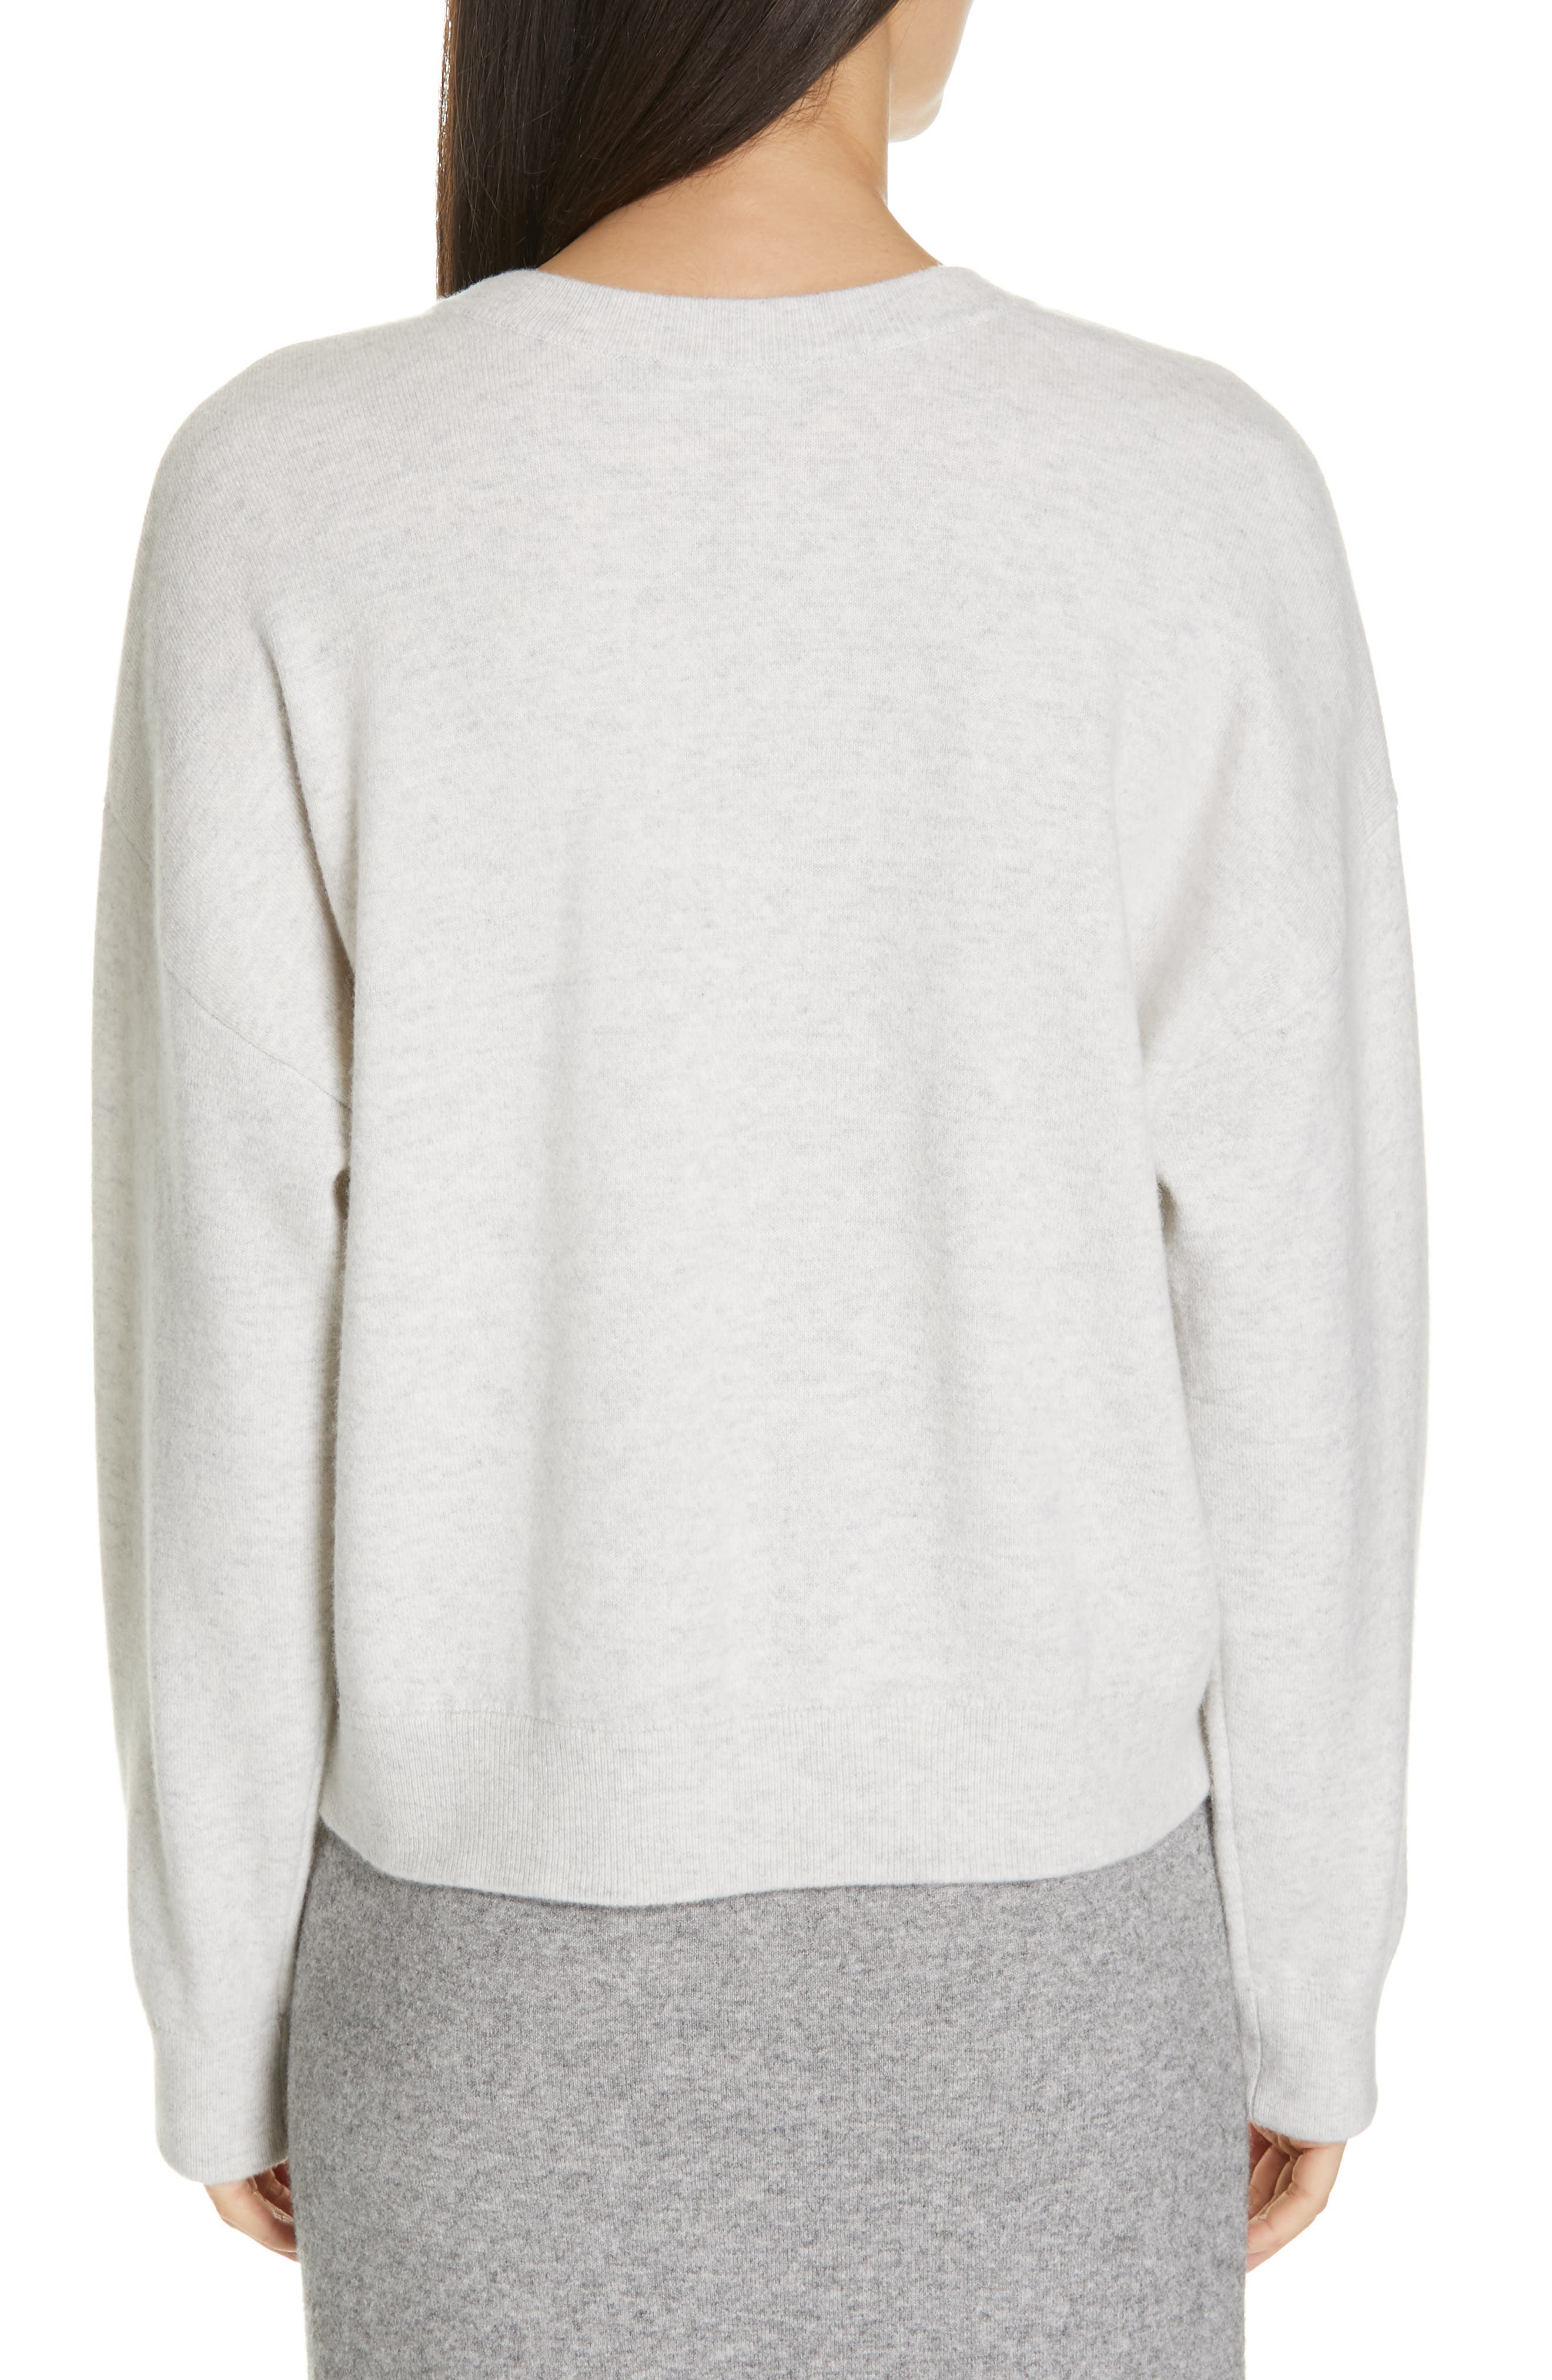 VINCE, Double Layer Sweater, Alternate thumbnail 2, color, H CLOUD/ OPTIC WHITE